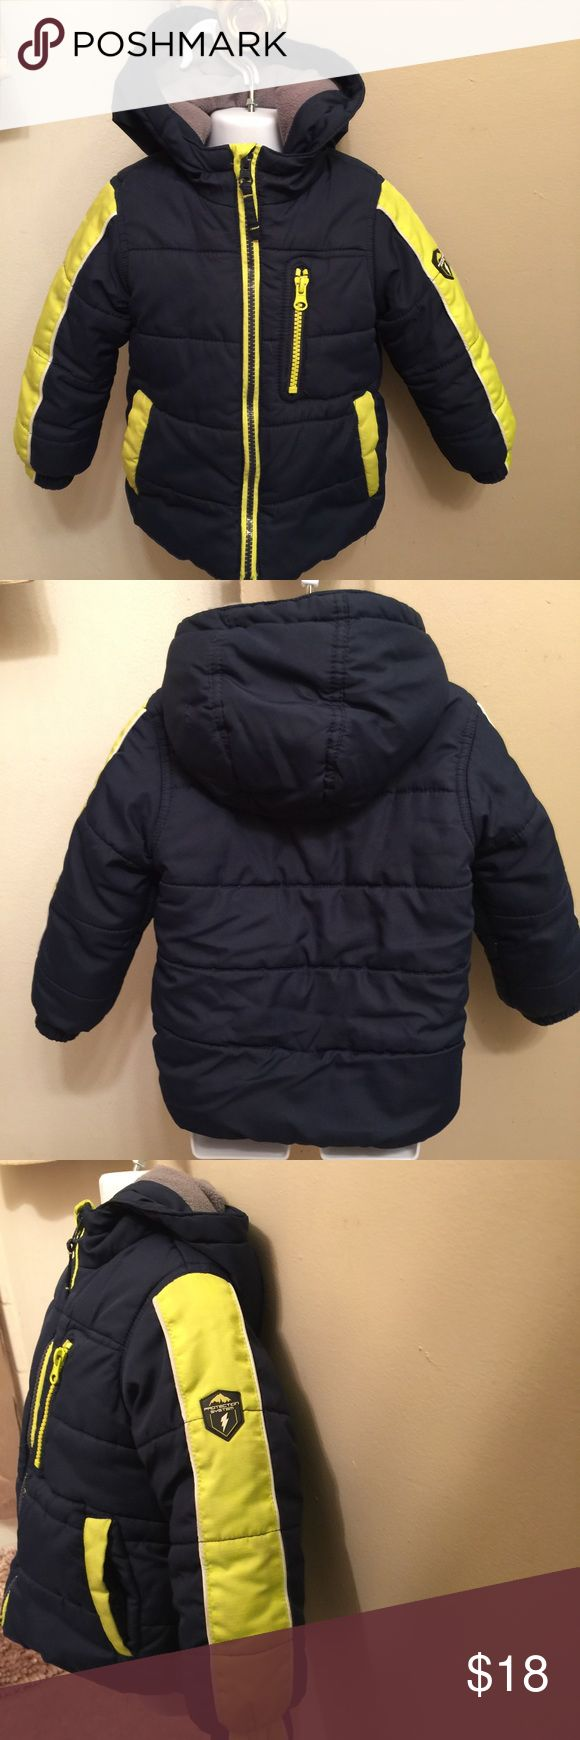 Macy's Protection System Bubble Coat Boys 24 Month Navy Blue/ Yellow 24 Months Boy's Puffer Coat From Macy's. Attached Hood, Fleece Lining. Great Condition, Gently Used. Protection System Jackets & Coats Puffers